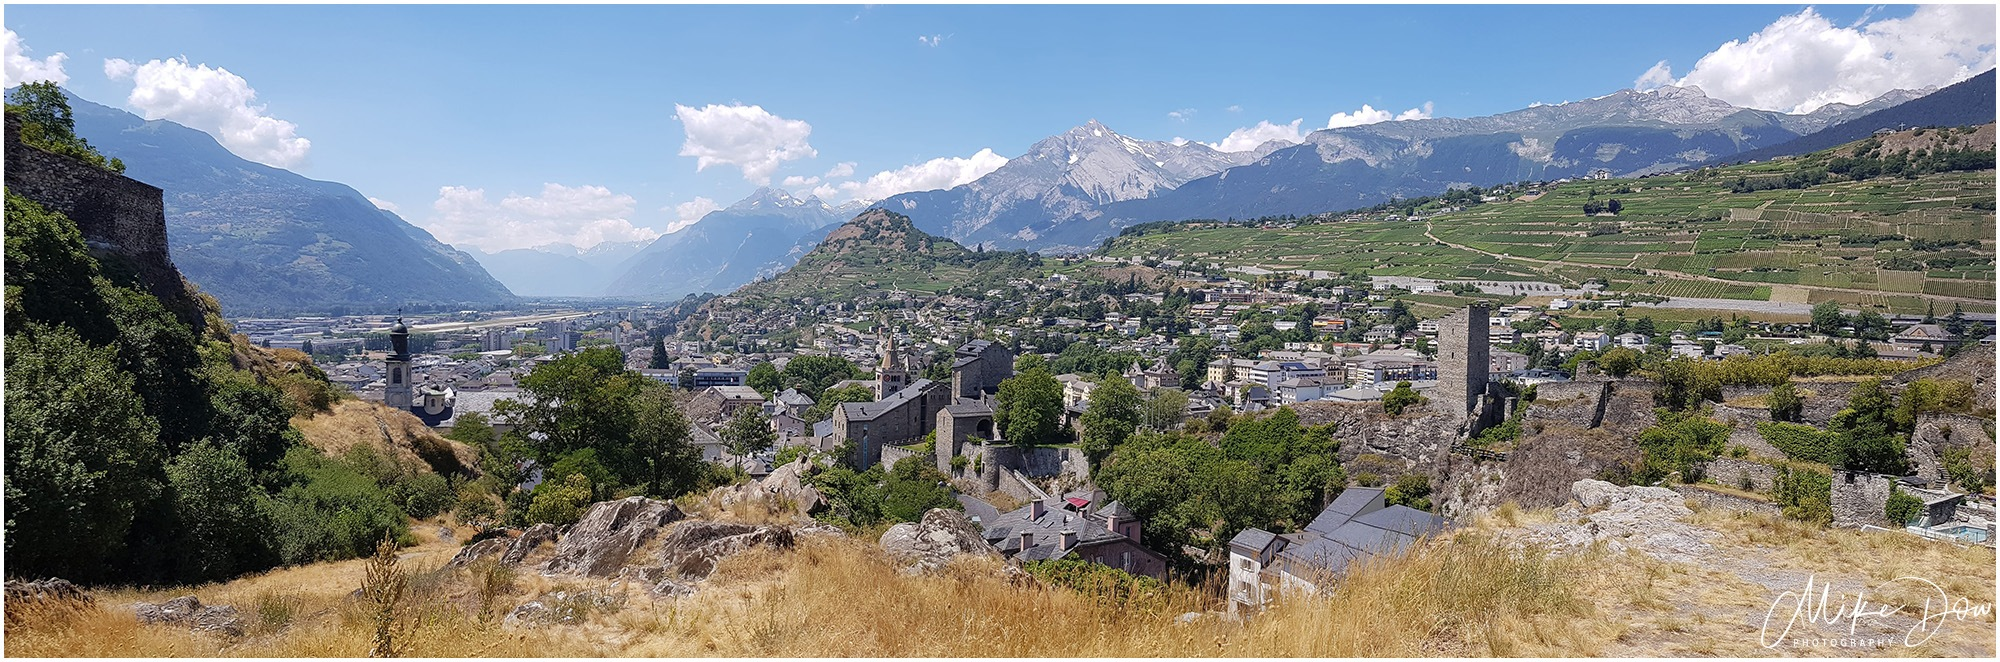 Sion by Mike Dow